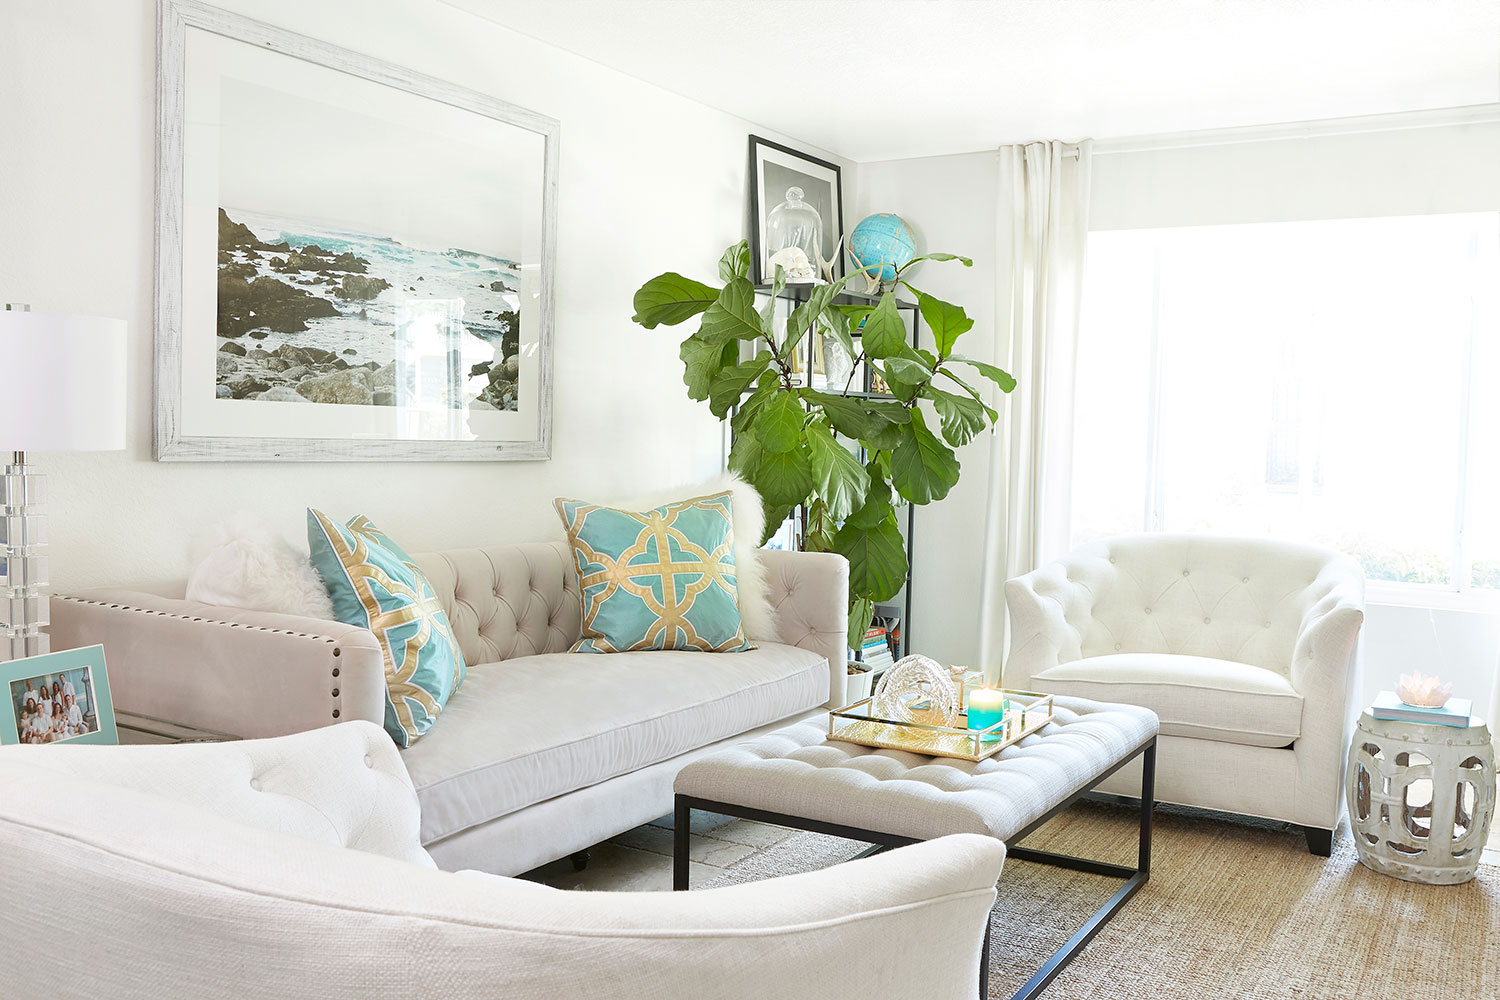 A Luxe Transformation for Less With Z Gallerie | Rue